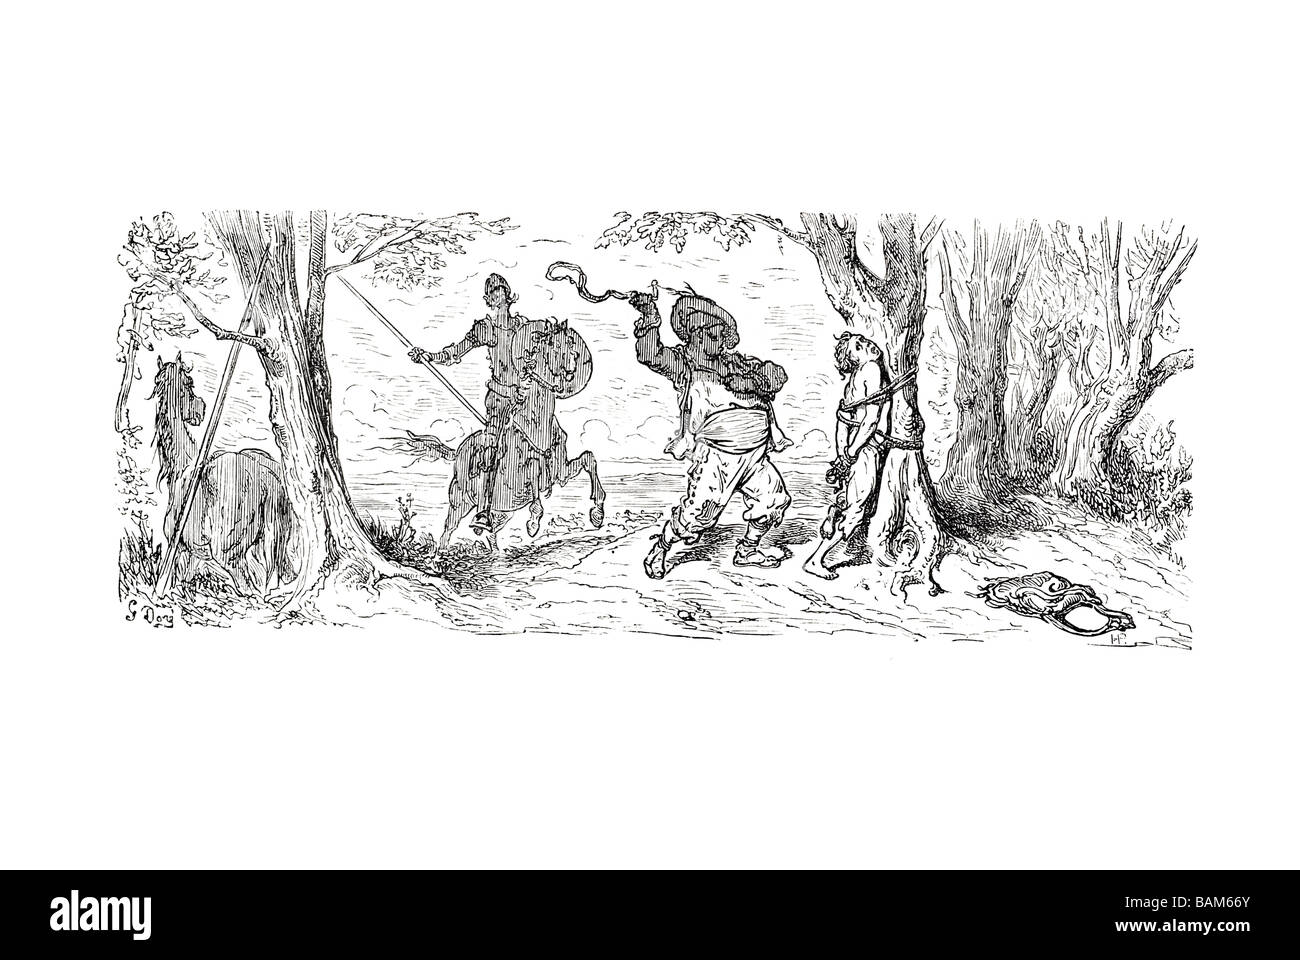 chapter IV what befell the knight after he had left the inn 4 four Don quixote spanish novel Alonso Quixano Cervantes Stock Photo